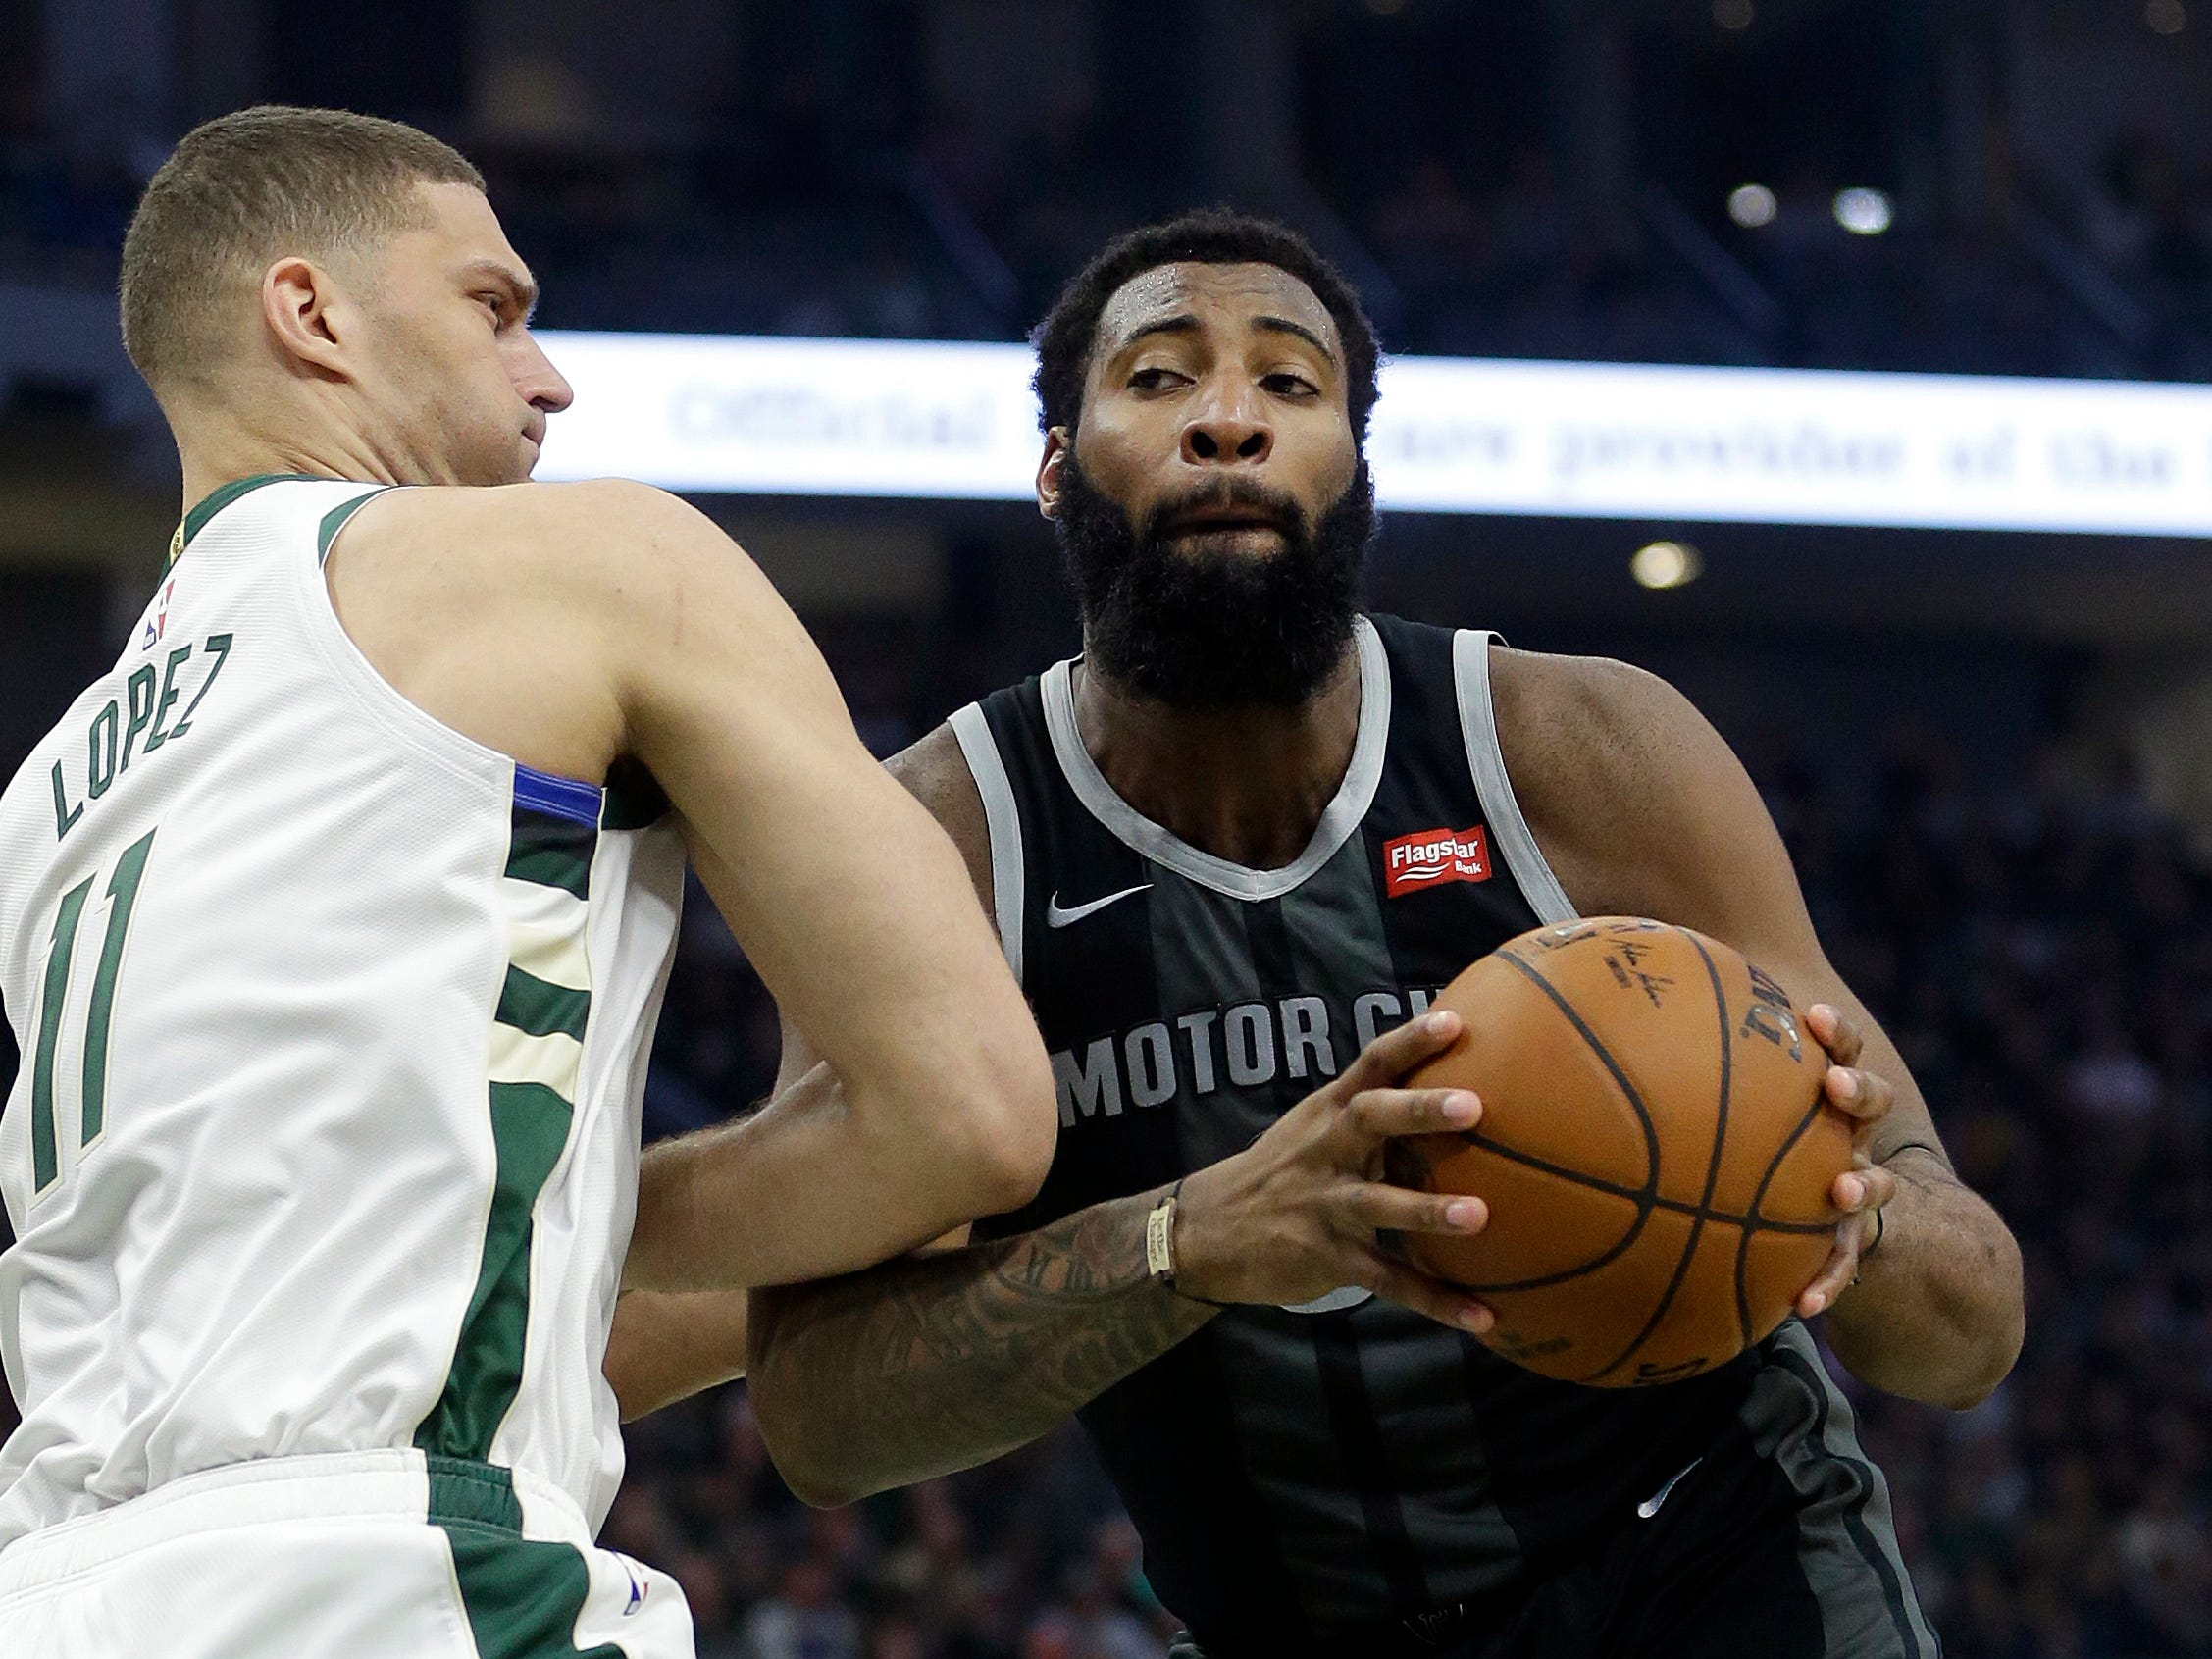 Detroit Pistons' Andre Drummond drives to the basket against Milwaukee Bucks' Brook Lopez during the first half.